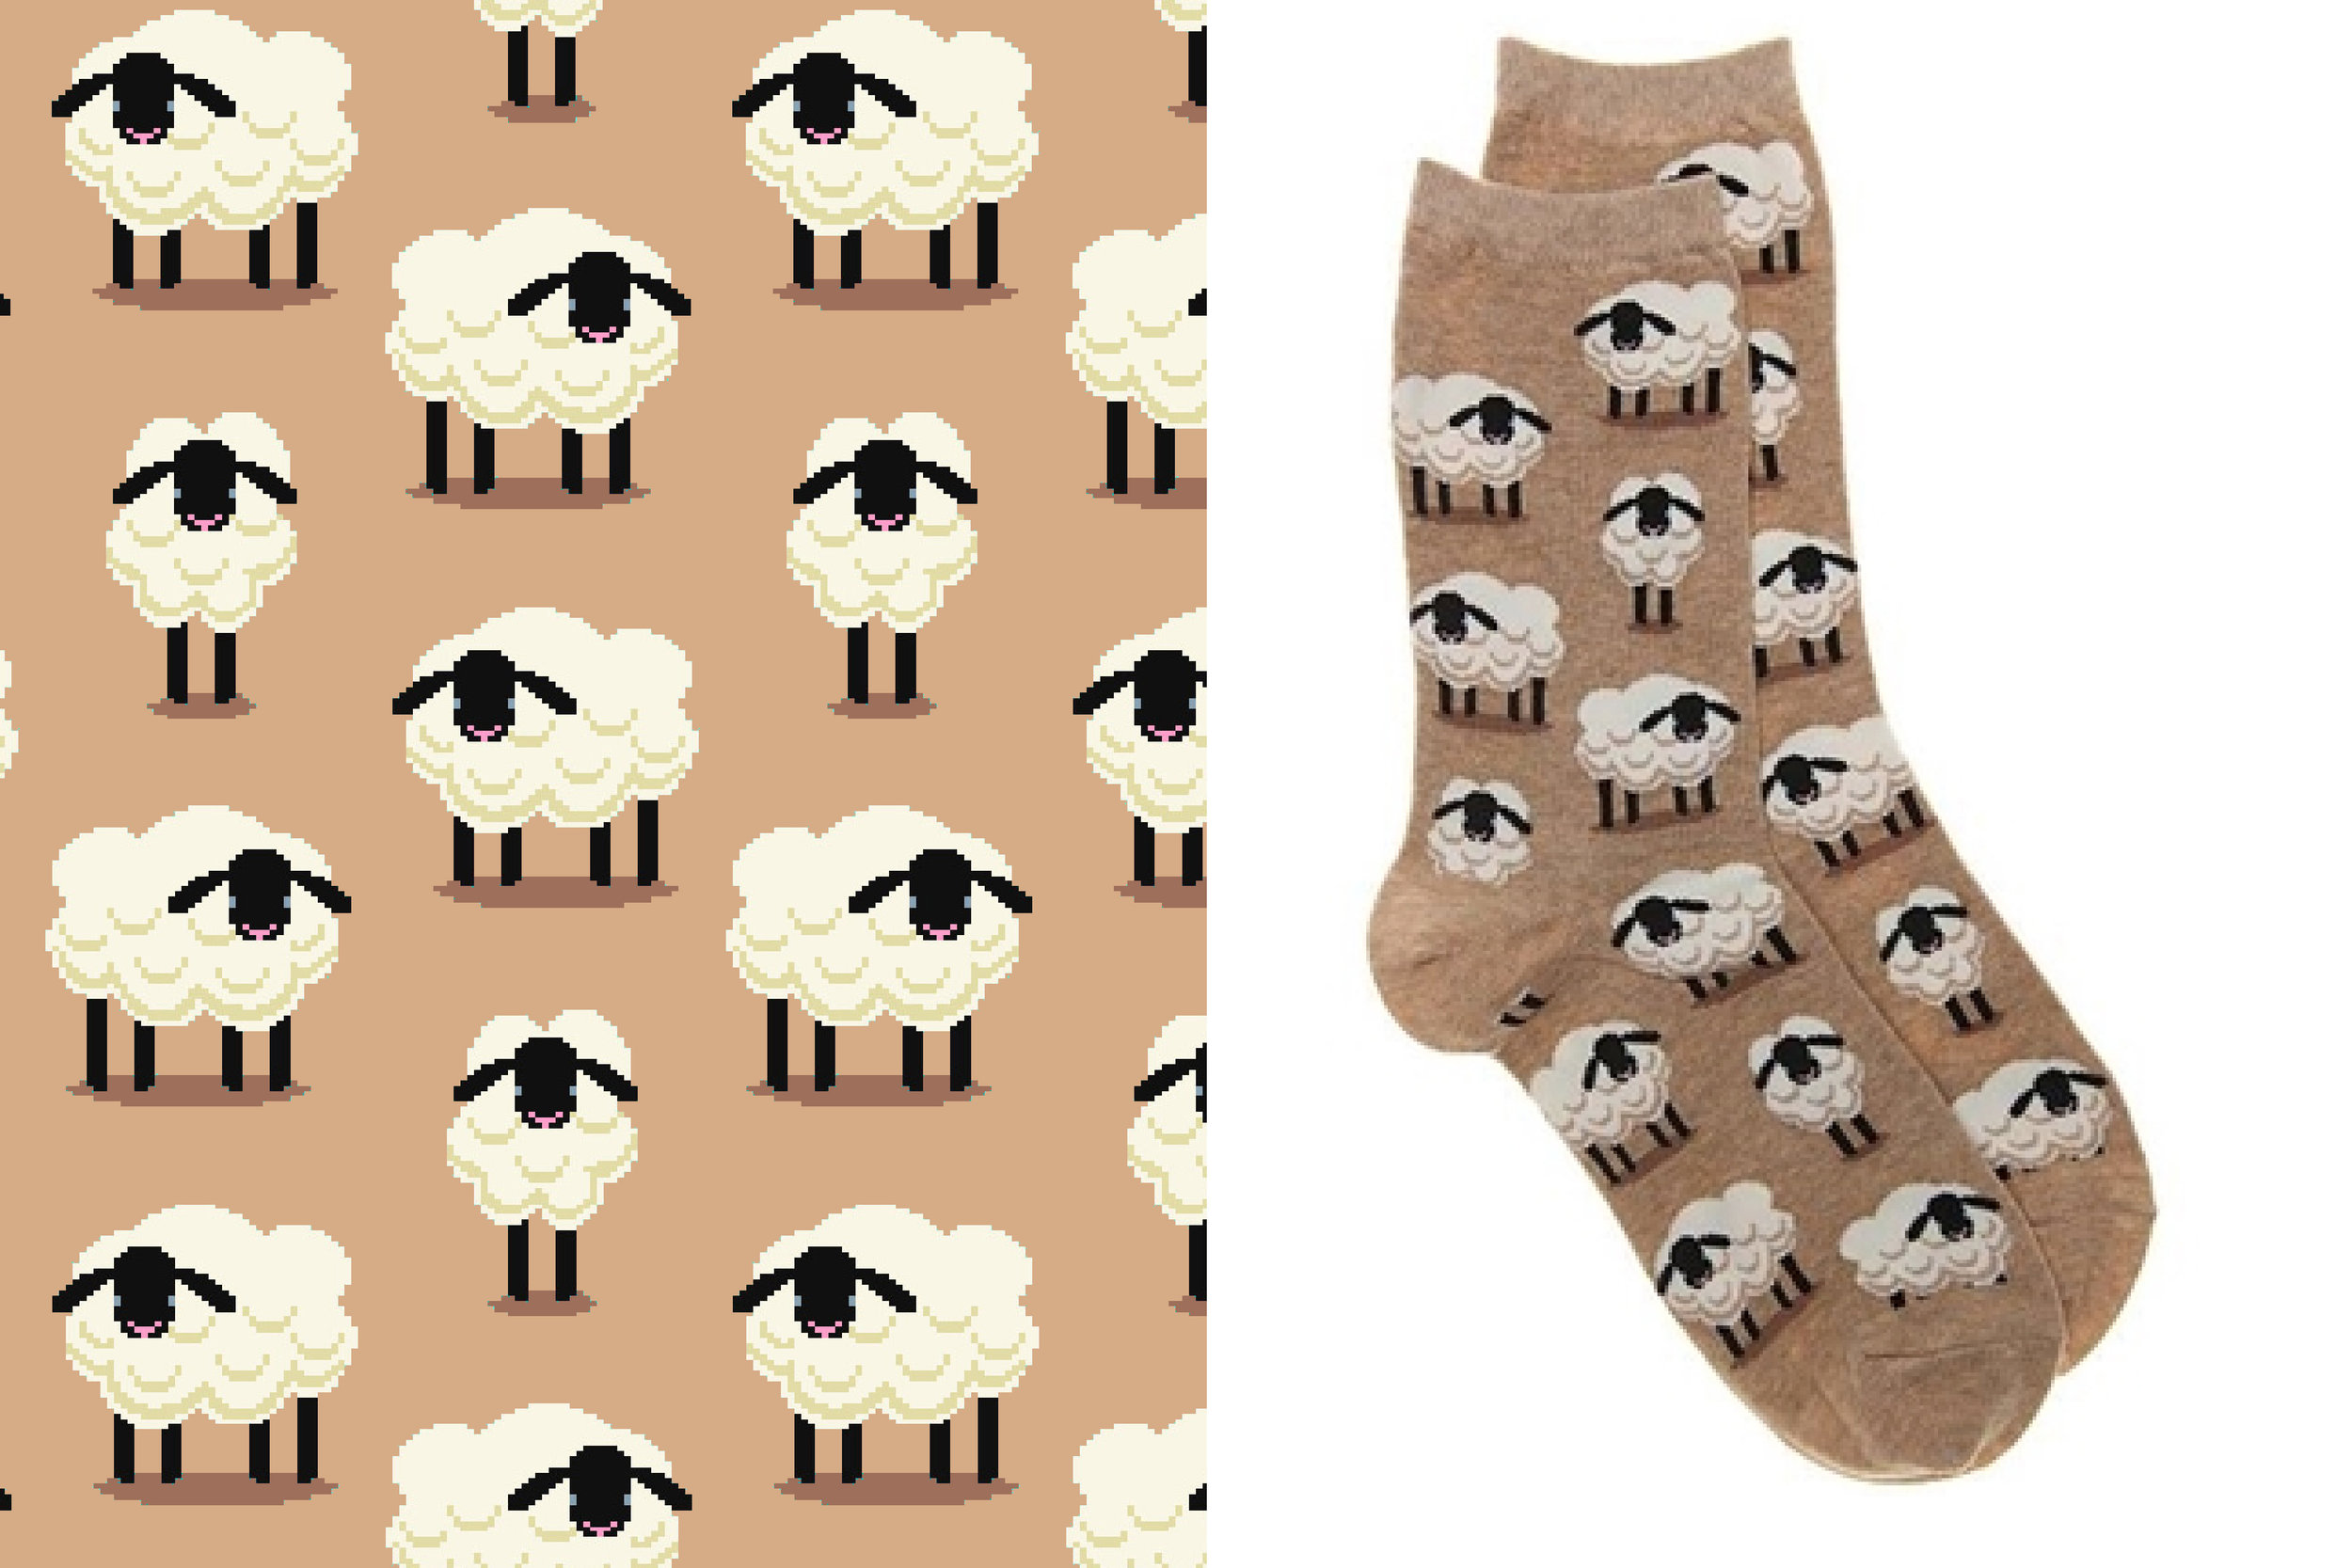 Sheep pattern designed for the Hot Sox Fall 2016 collection